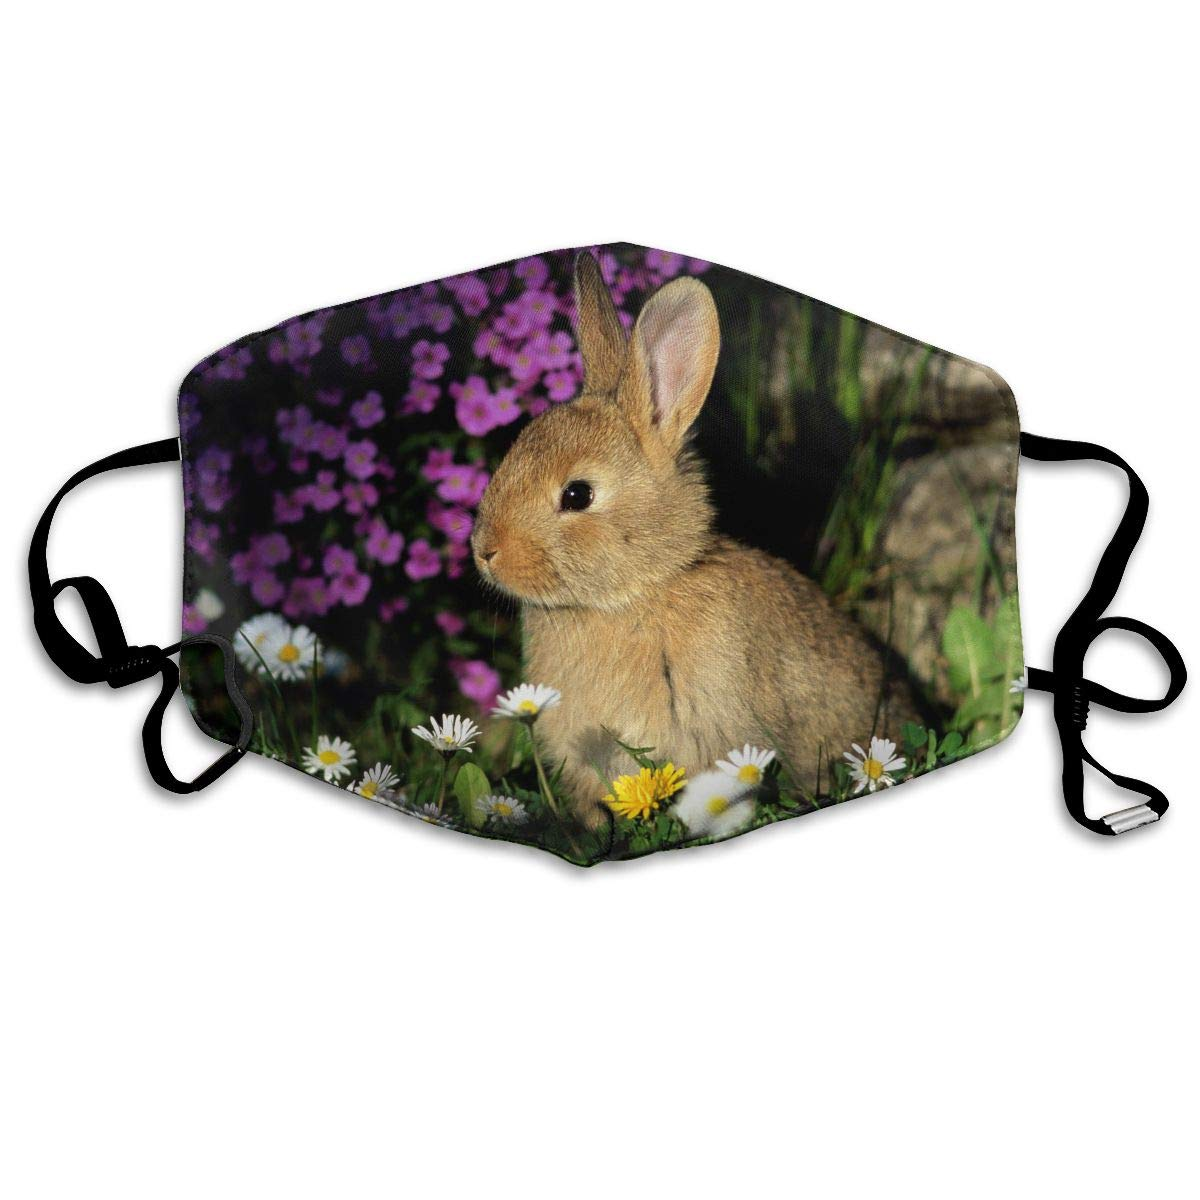 Polyester Anti-dust Mouth Mask - Cute Rabbit Bunny Art Washed Reusable Mouth-Muffle - Fashion Printed Face Masks For Outdoor